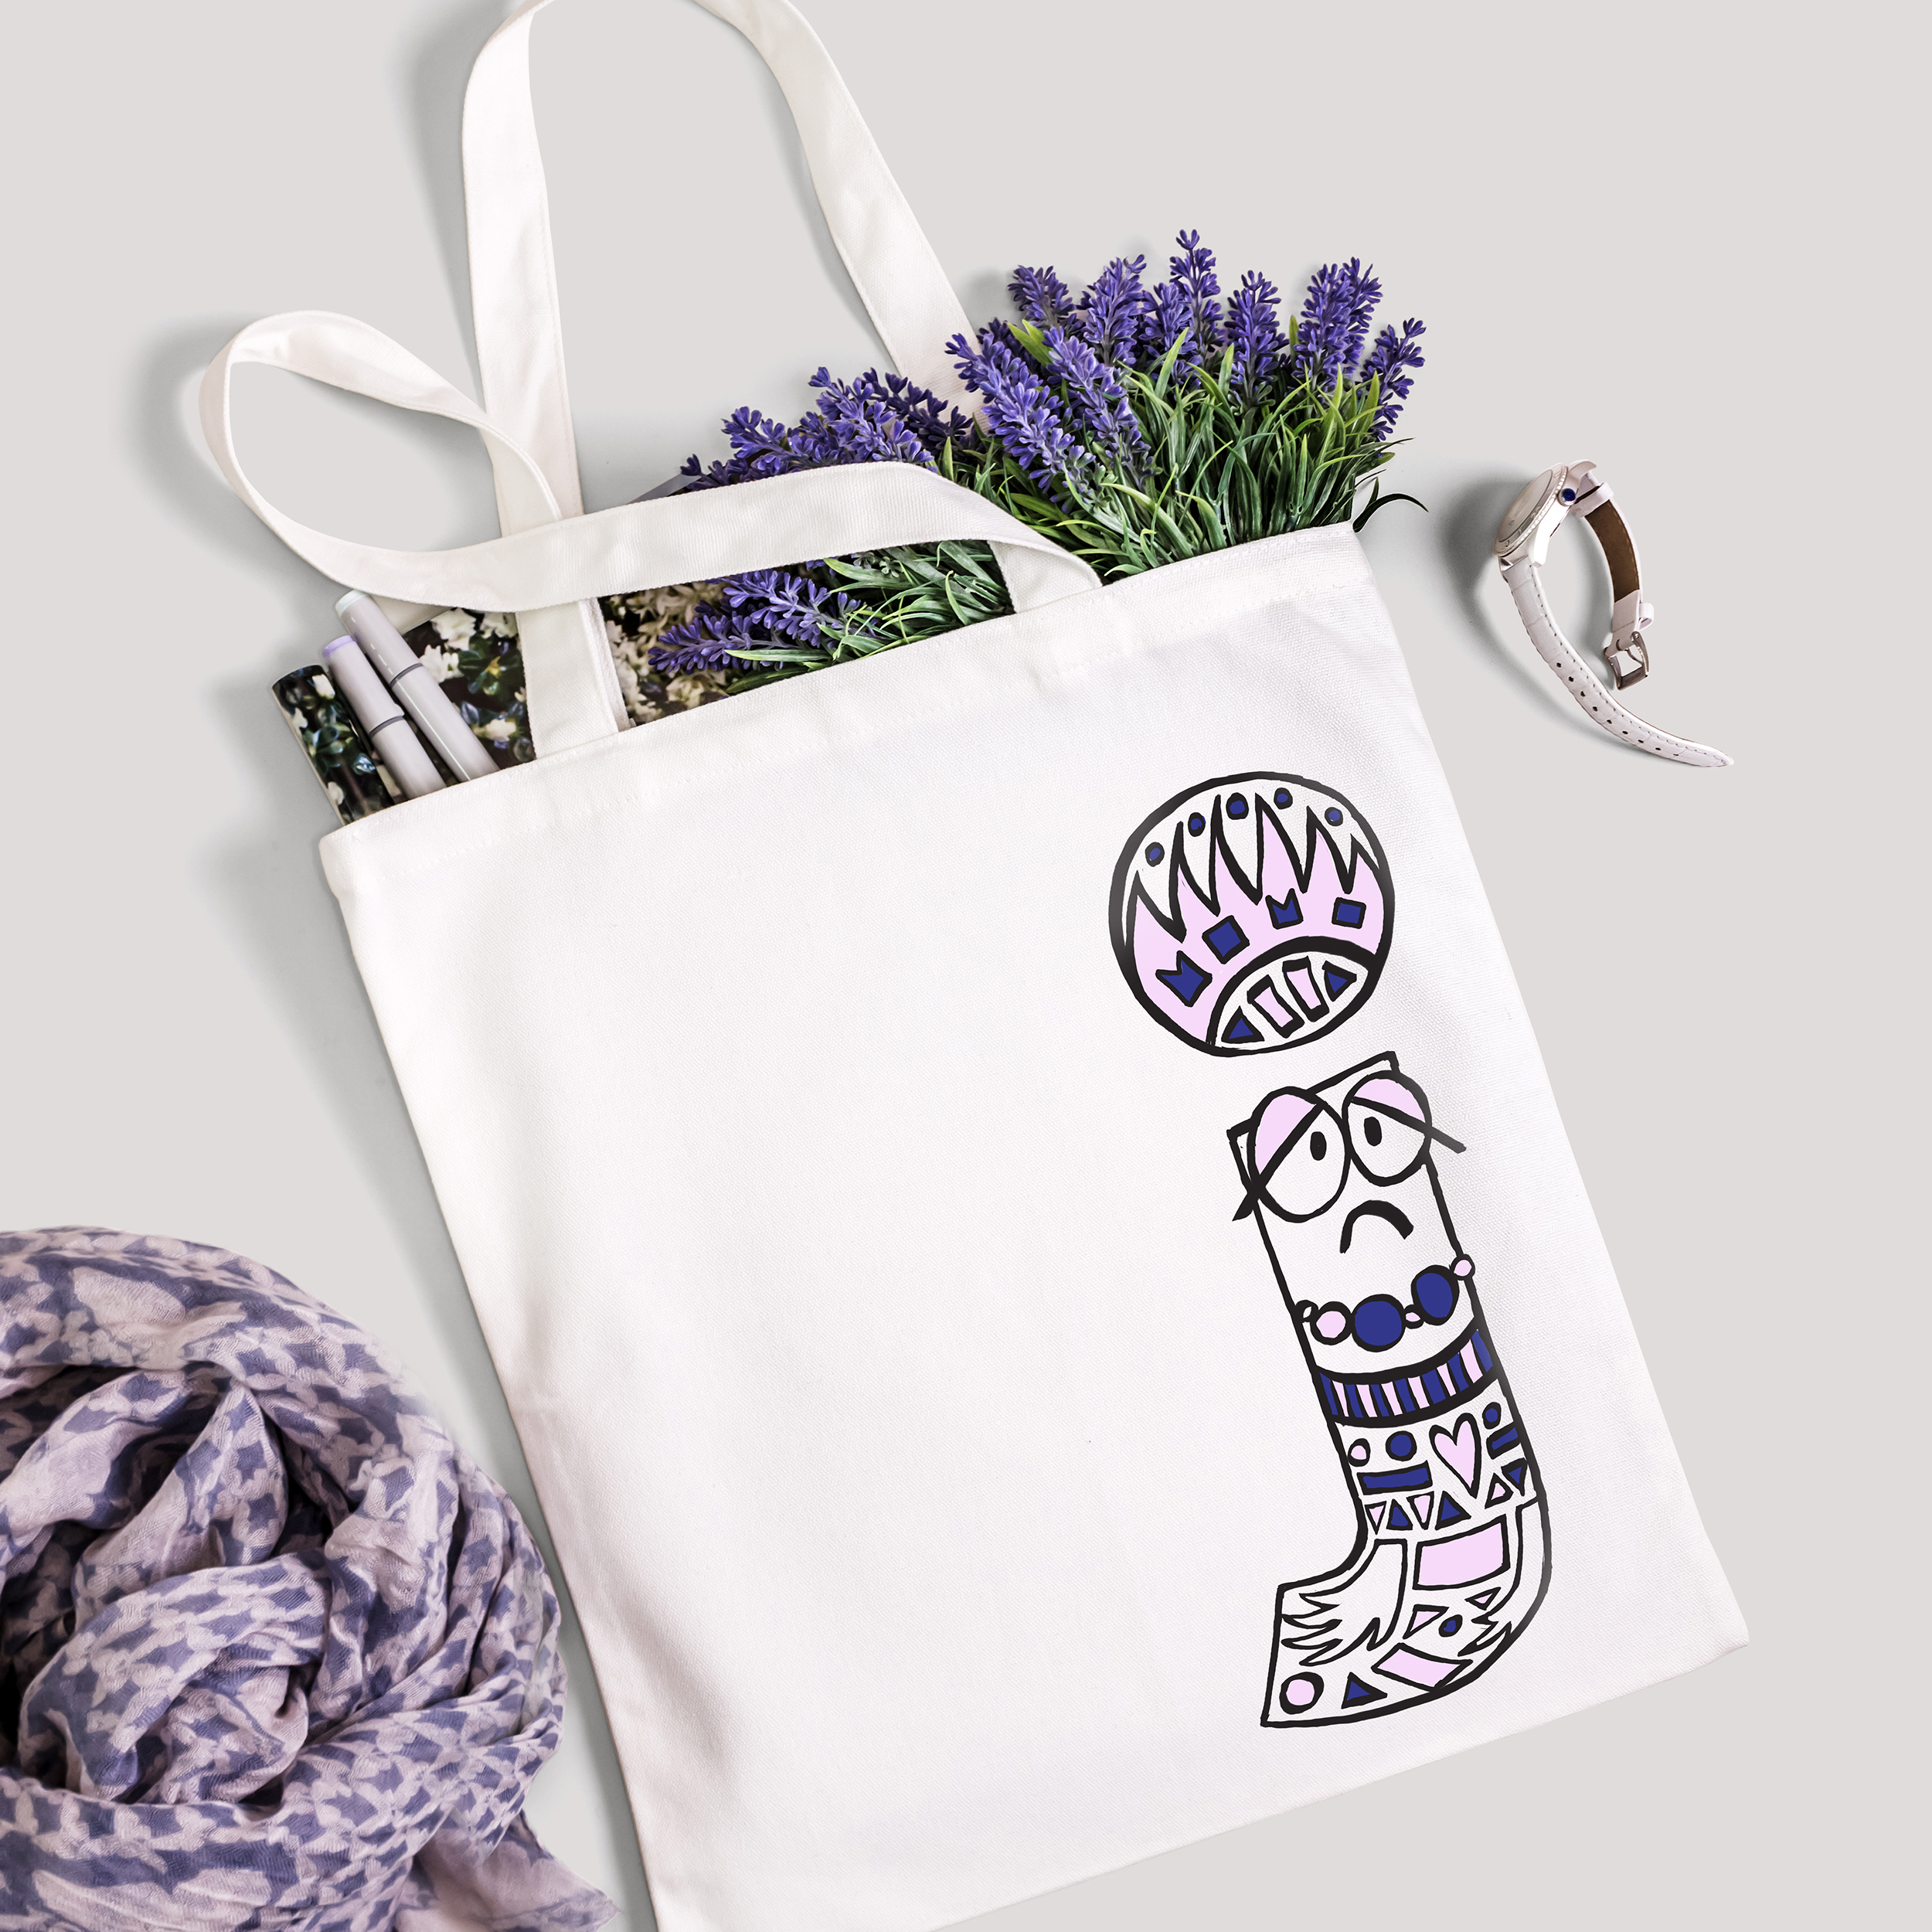 Typo collection - t-shirts & bags 16